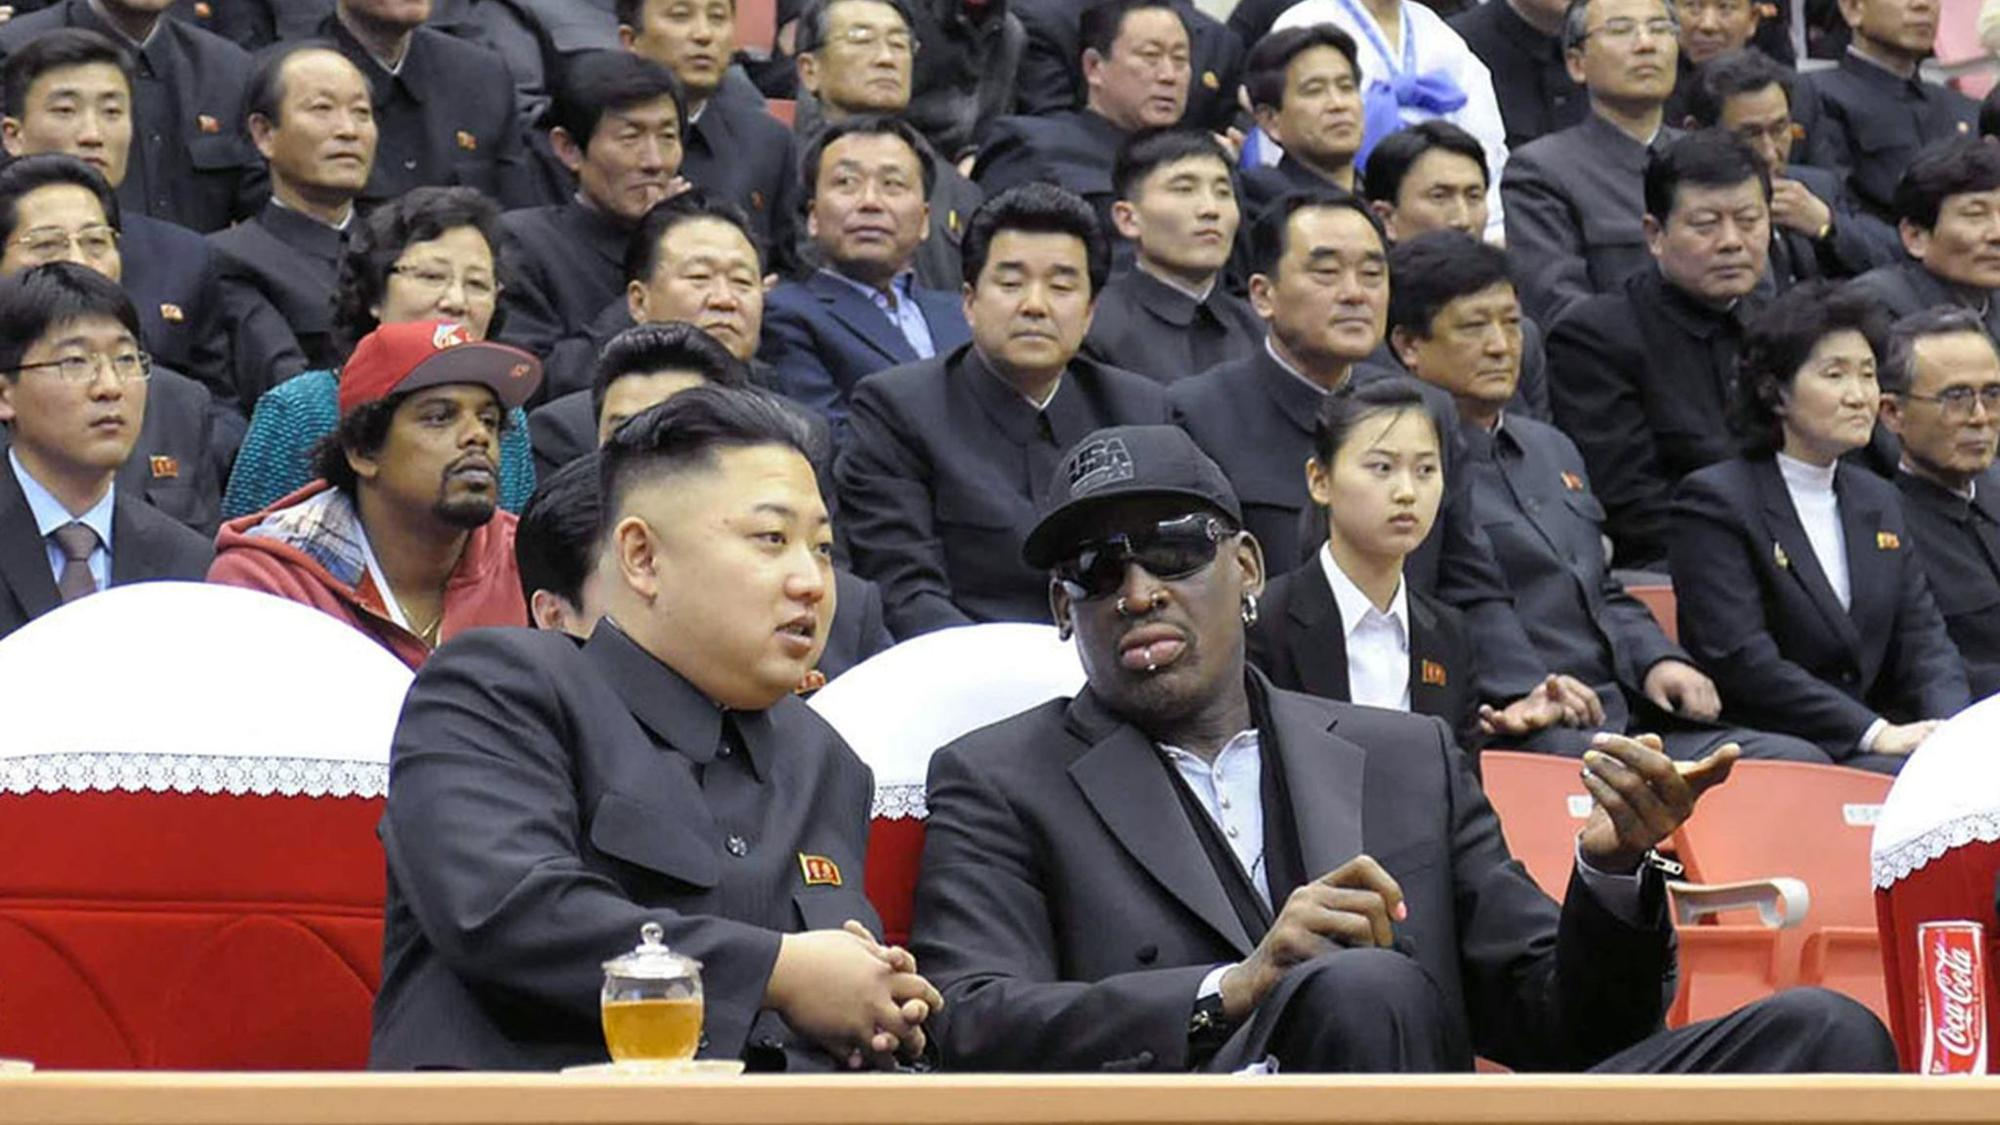 Dennis Rodman says he'll organize a basketball game between North Korea and U.S. territory Guam